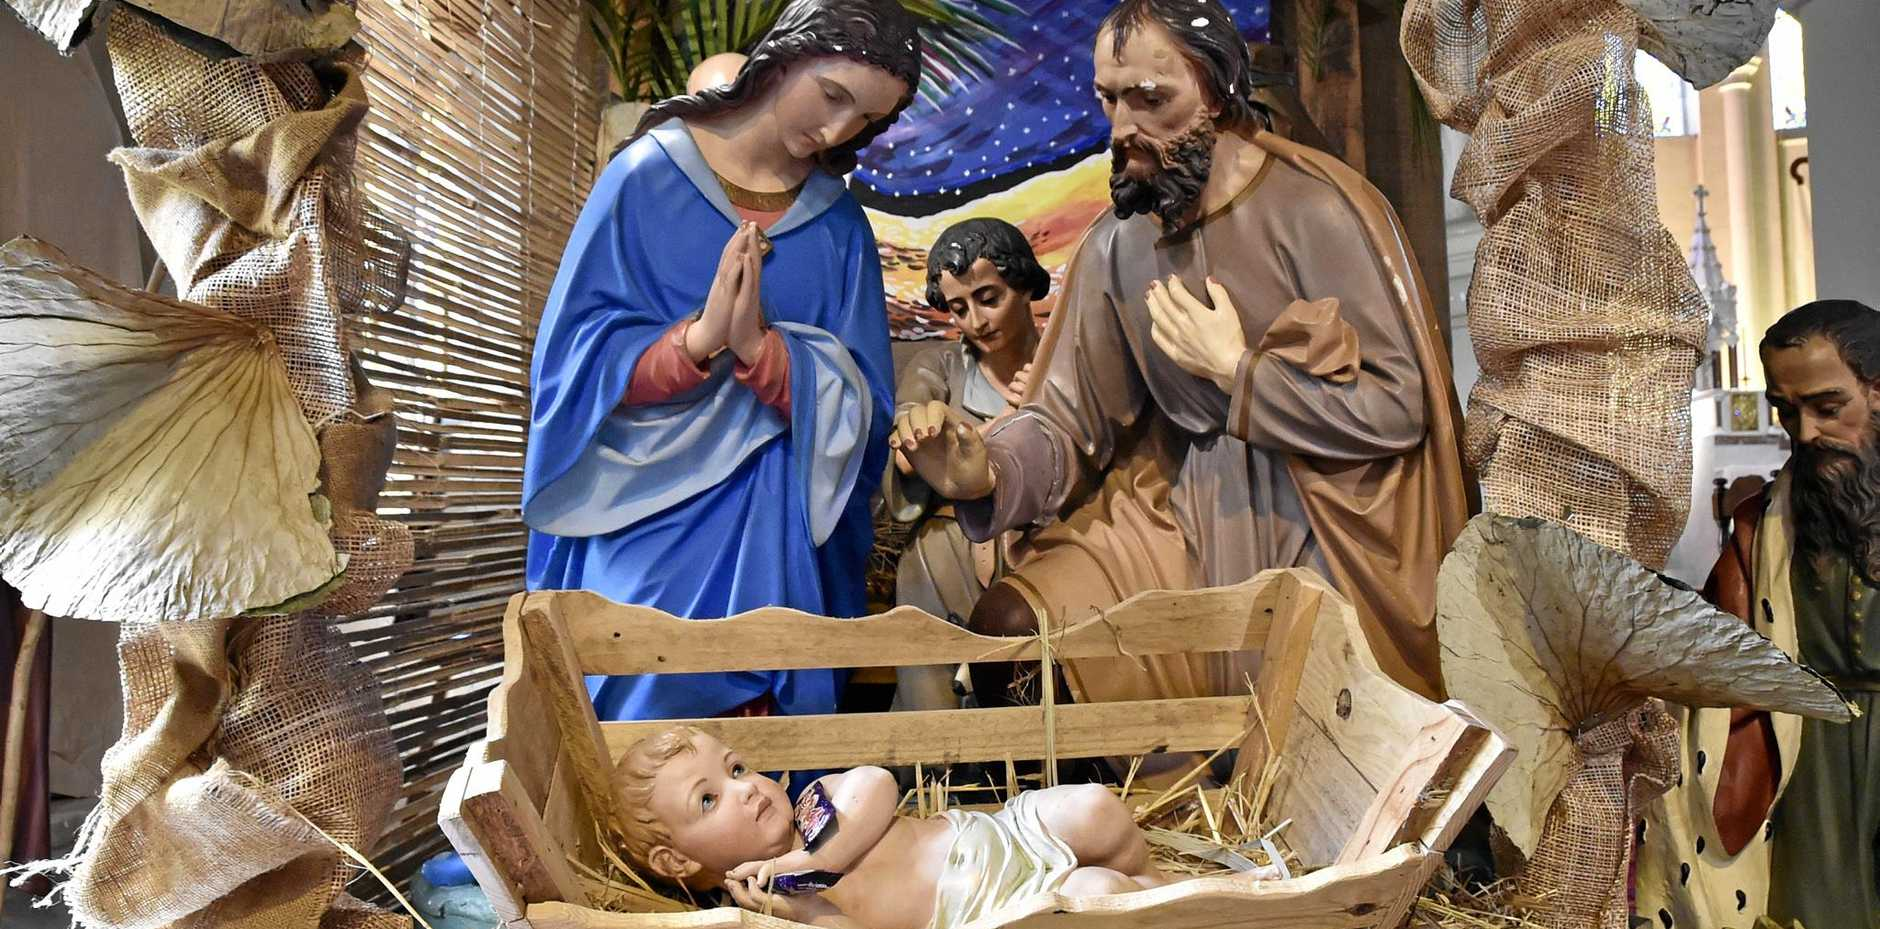 Jesus is the reason for the season says the Salvation Army's Don Cook.